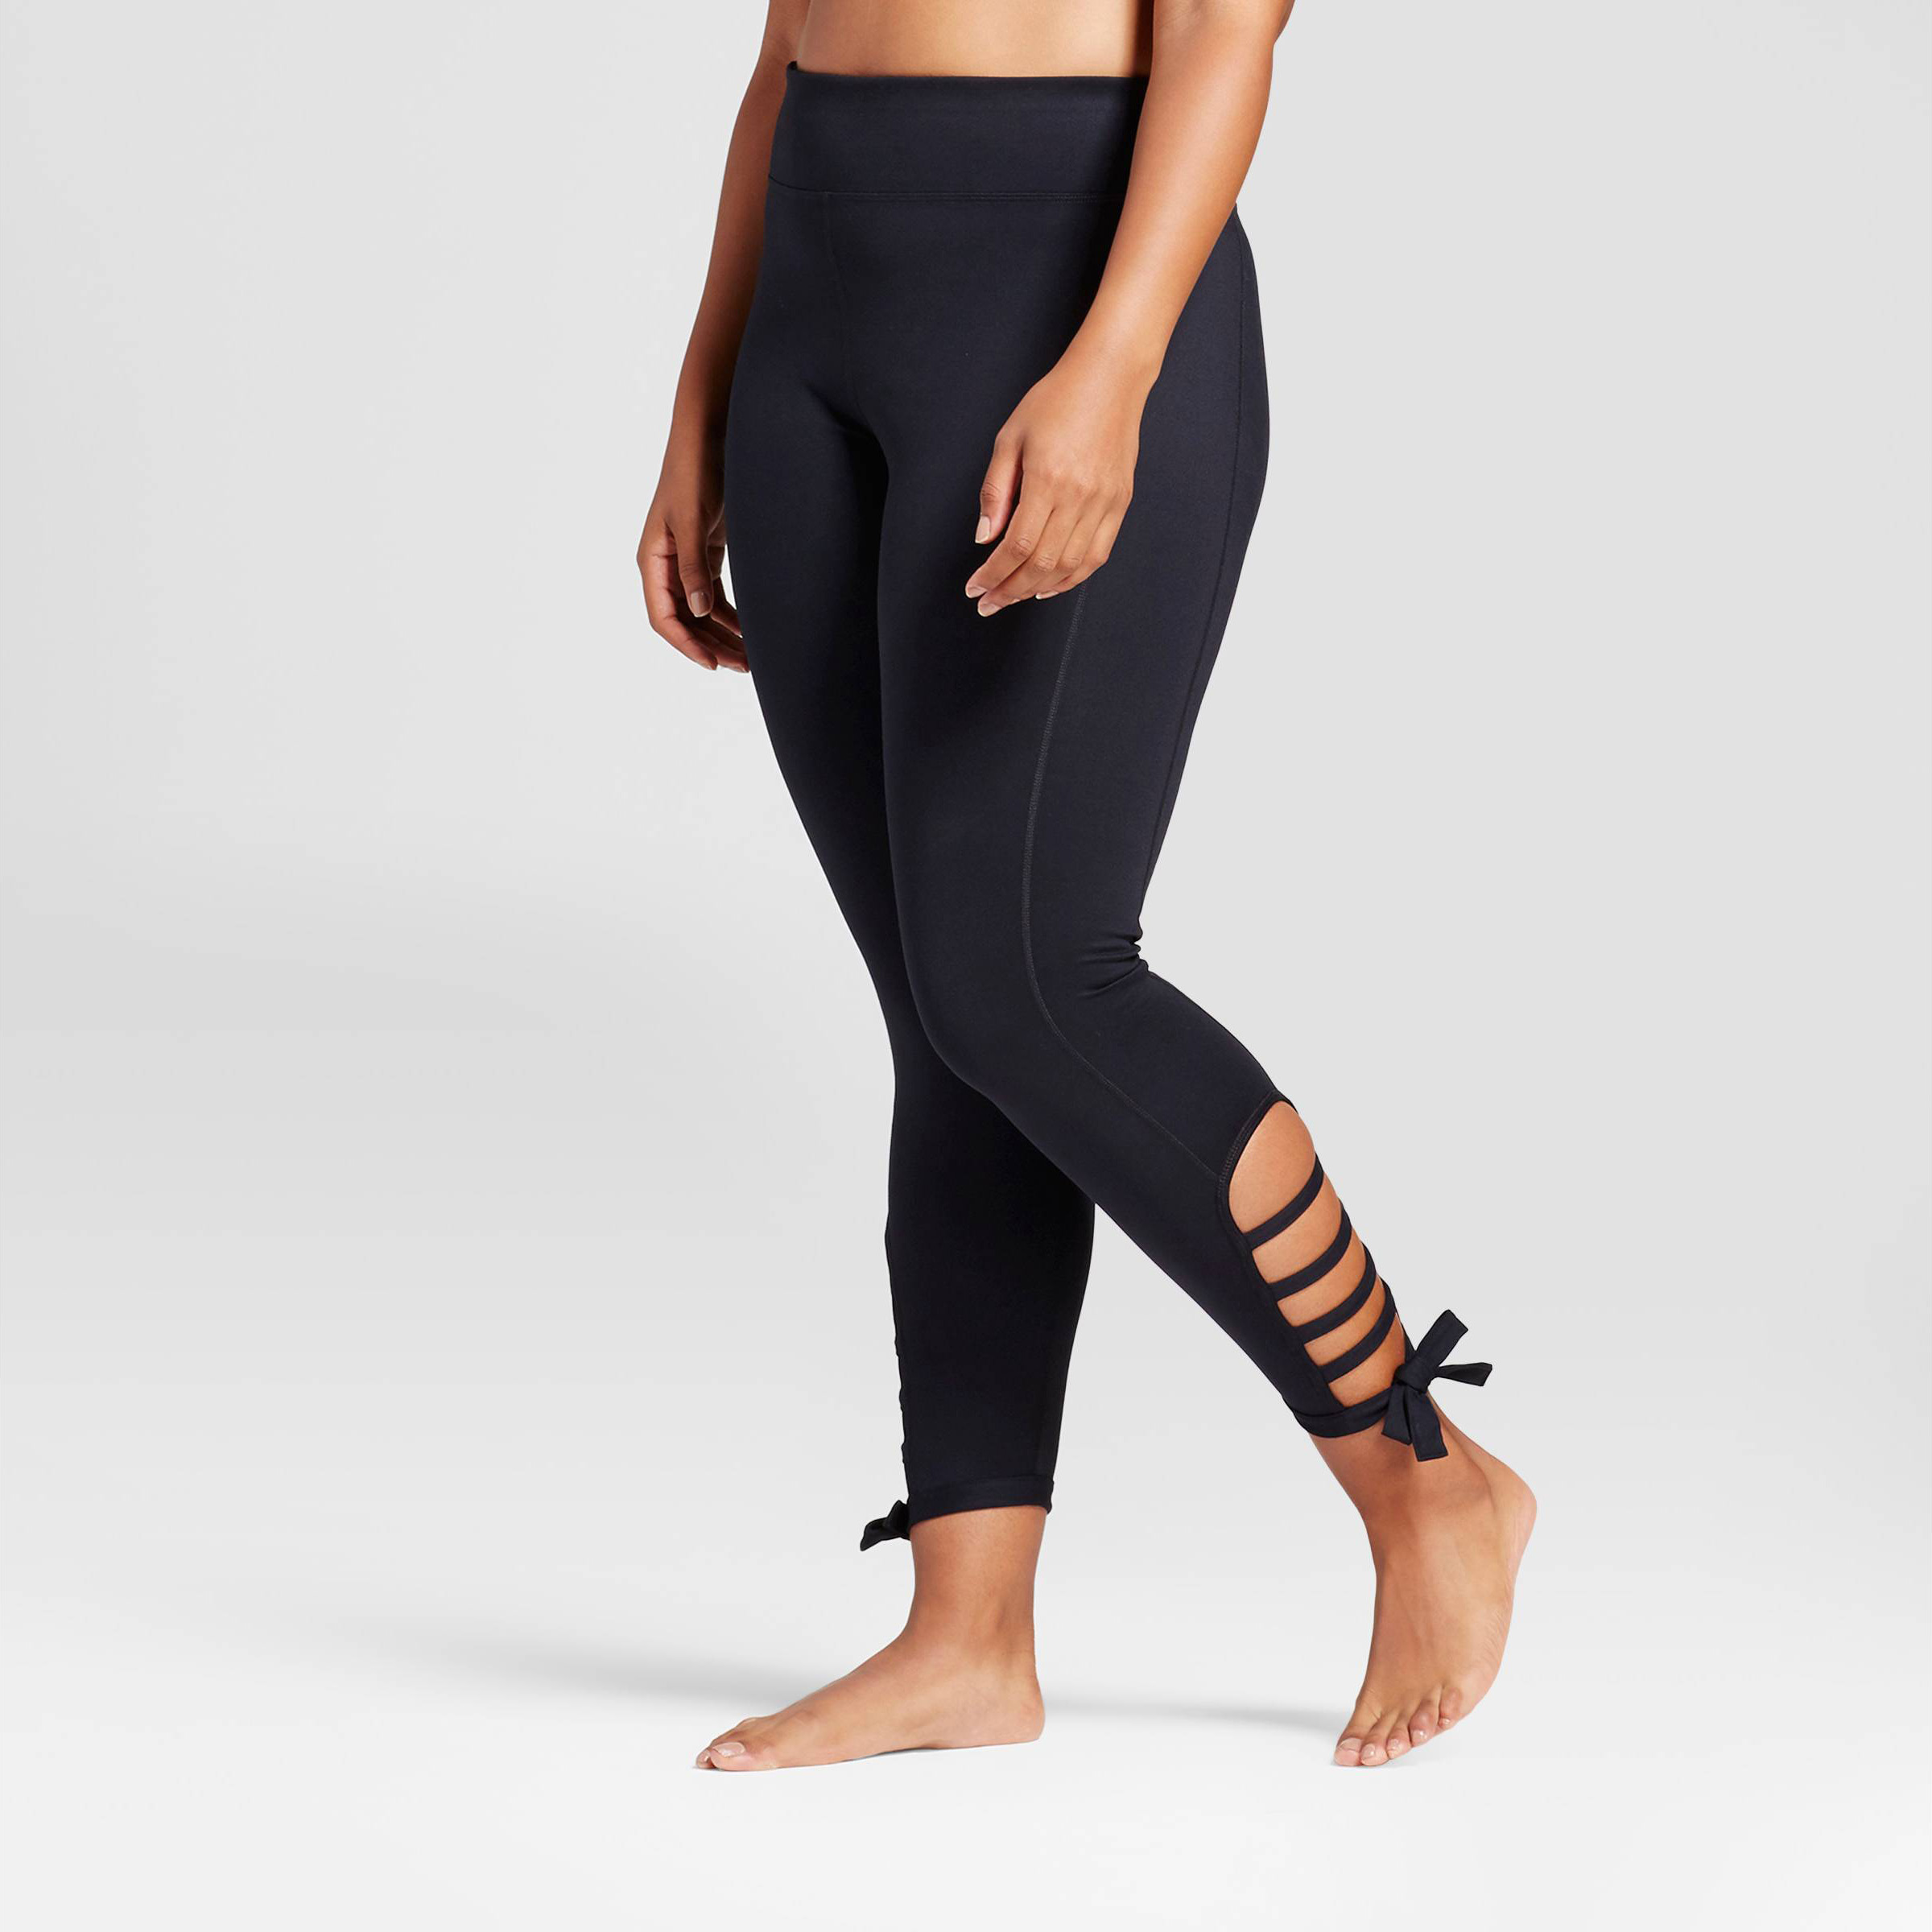 812c810fe3c0f JoyLab Women s Plus Comfort Side Tie 7 8 Leggings  31.99. Versatile  athletic wear has made all the difference in our wardrobes and we can t  wait to add ...